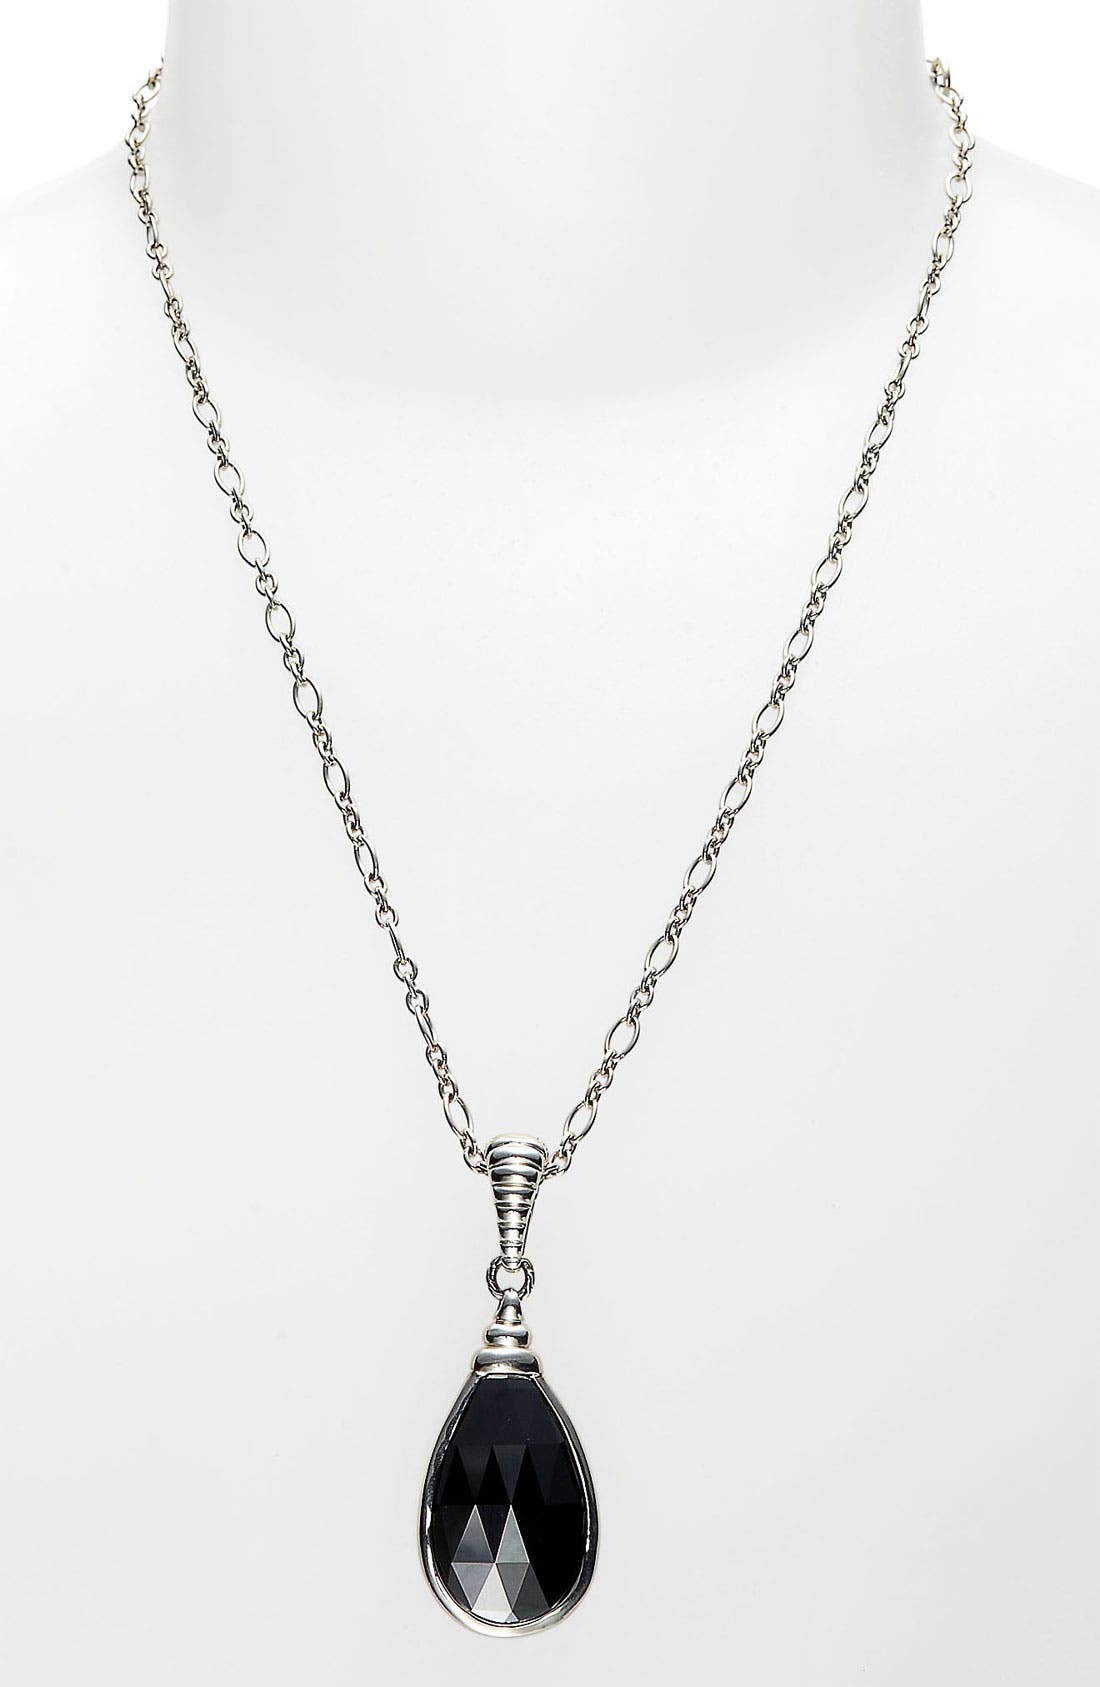 Main Image - John Hardy 'Bedeg' Teardrop Pendant Necklace